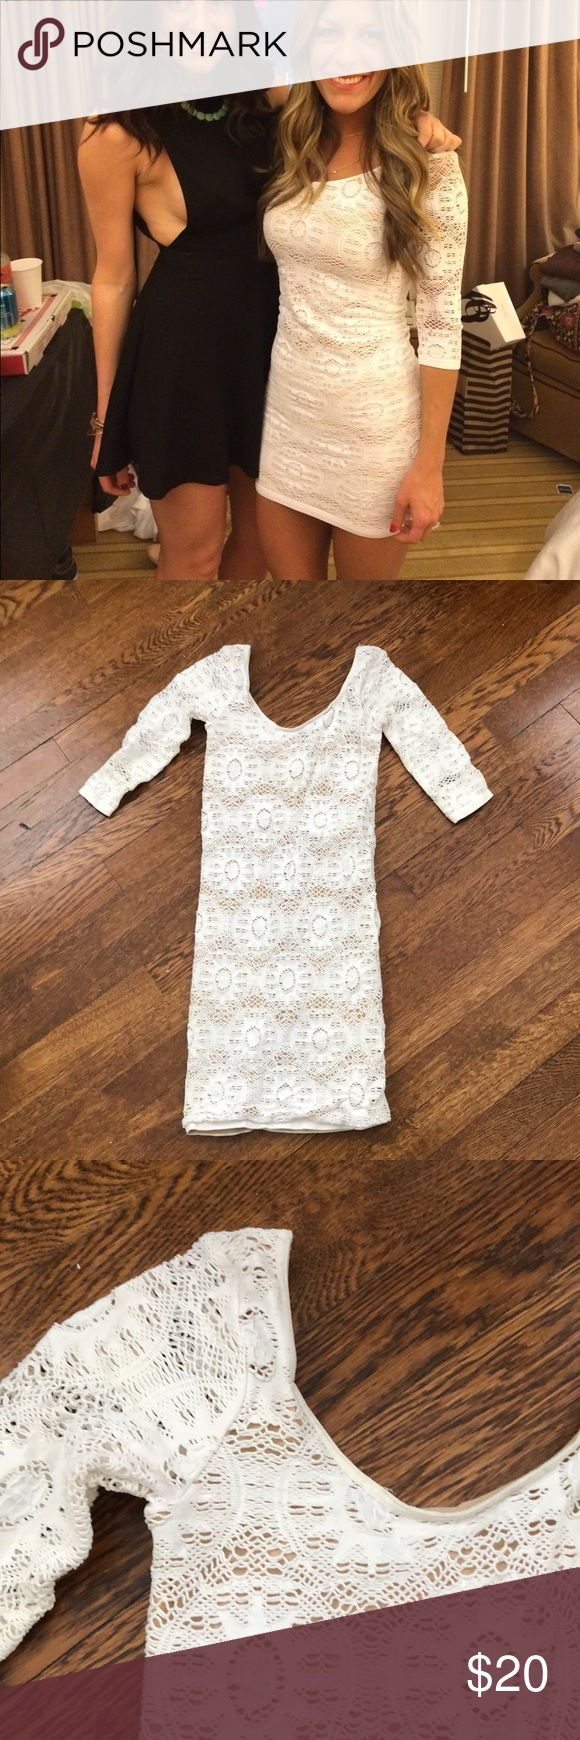 Arden b. Bodycon white dress Arden B. Bodycon dress with lace style design. Soooooo flattering. Nice thick material that bugs you in all he right places. Not see through at all. Wore it once for my bachelorette party. Perfect for all things bridal. Arden B Dresses Mini